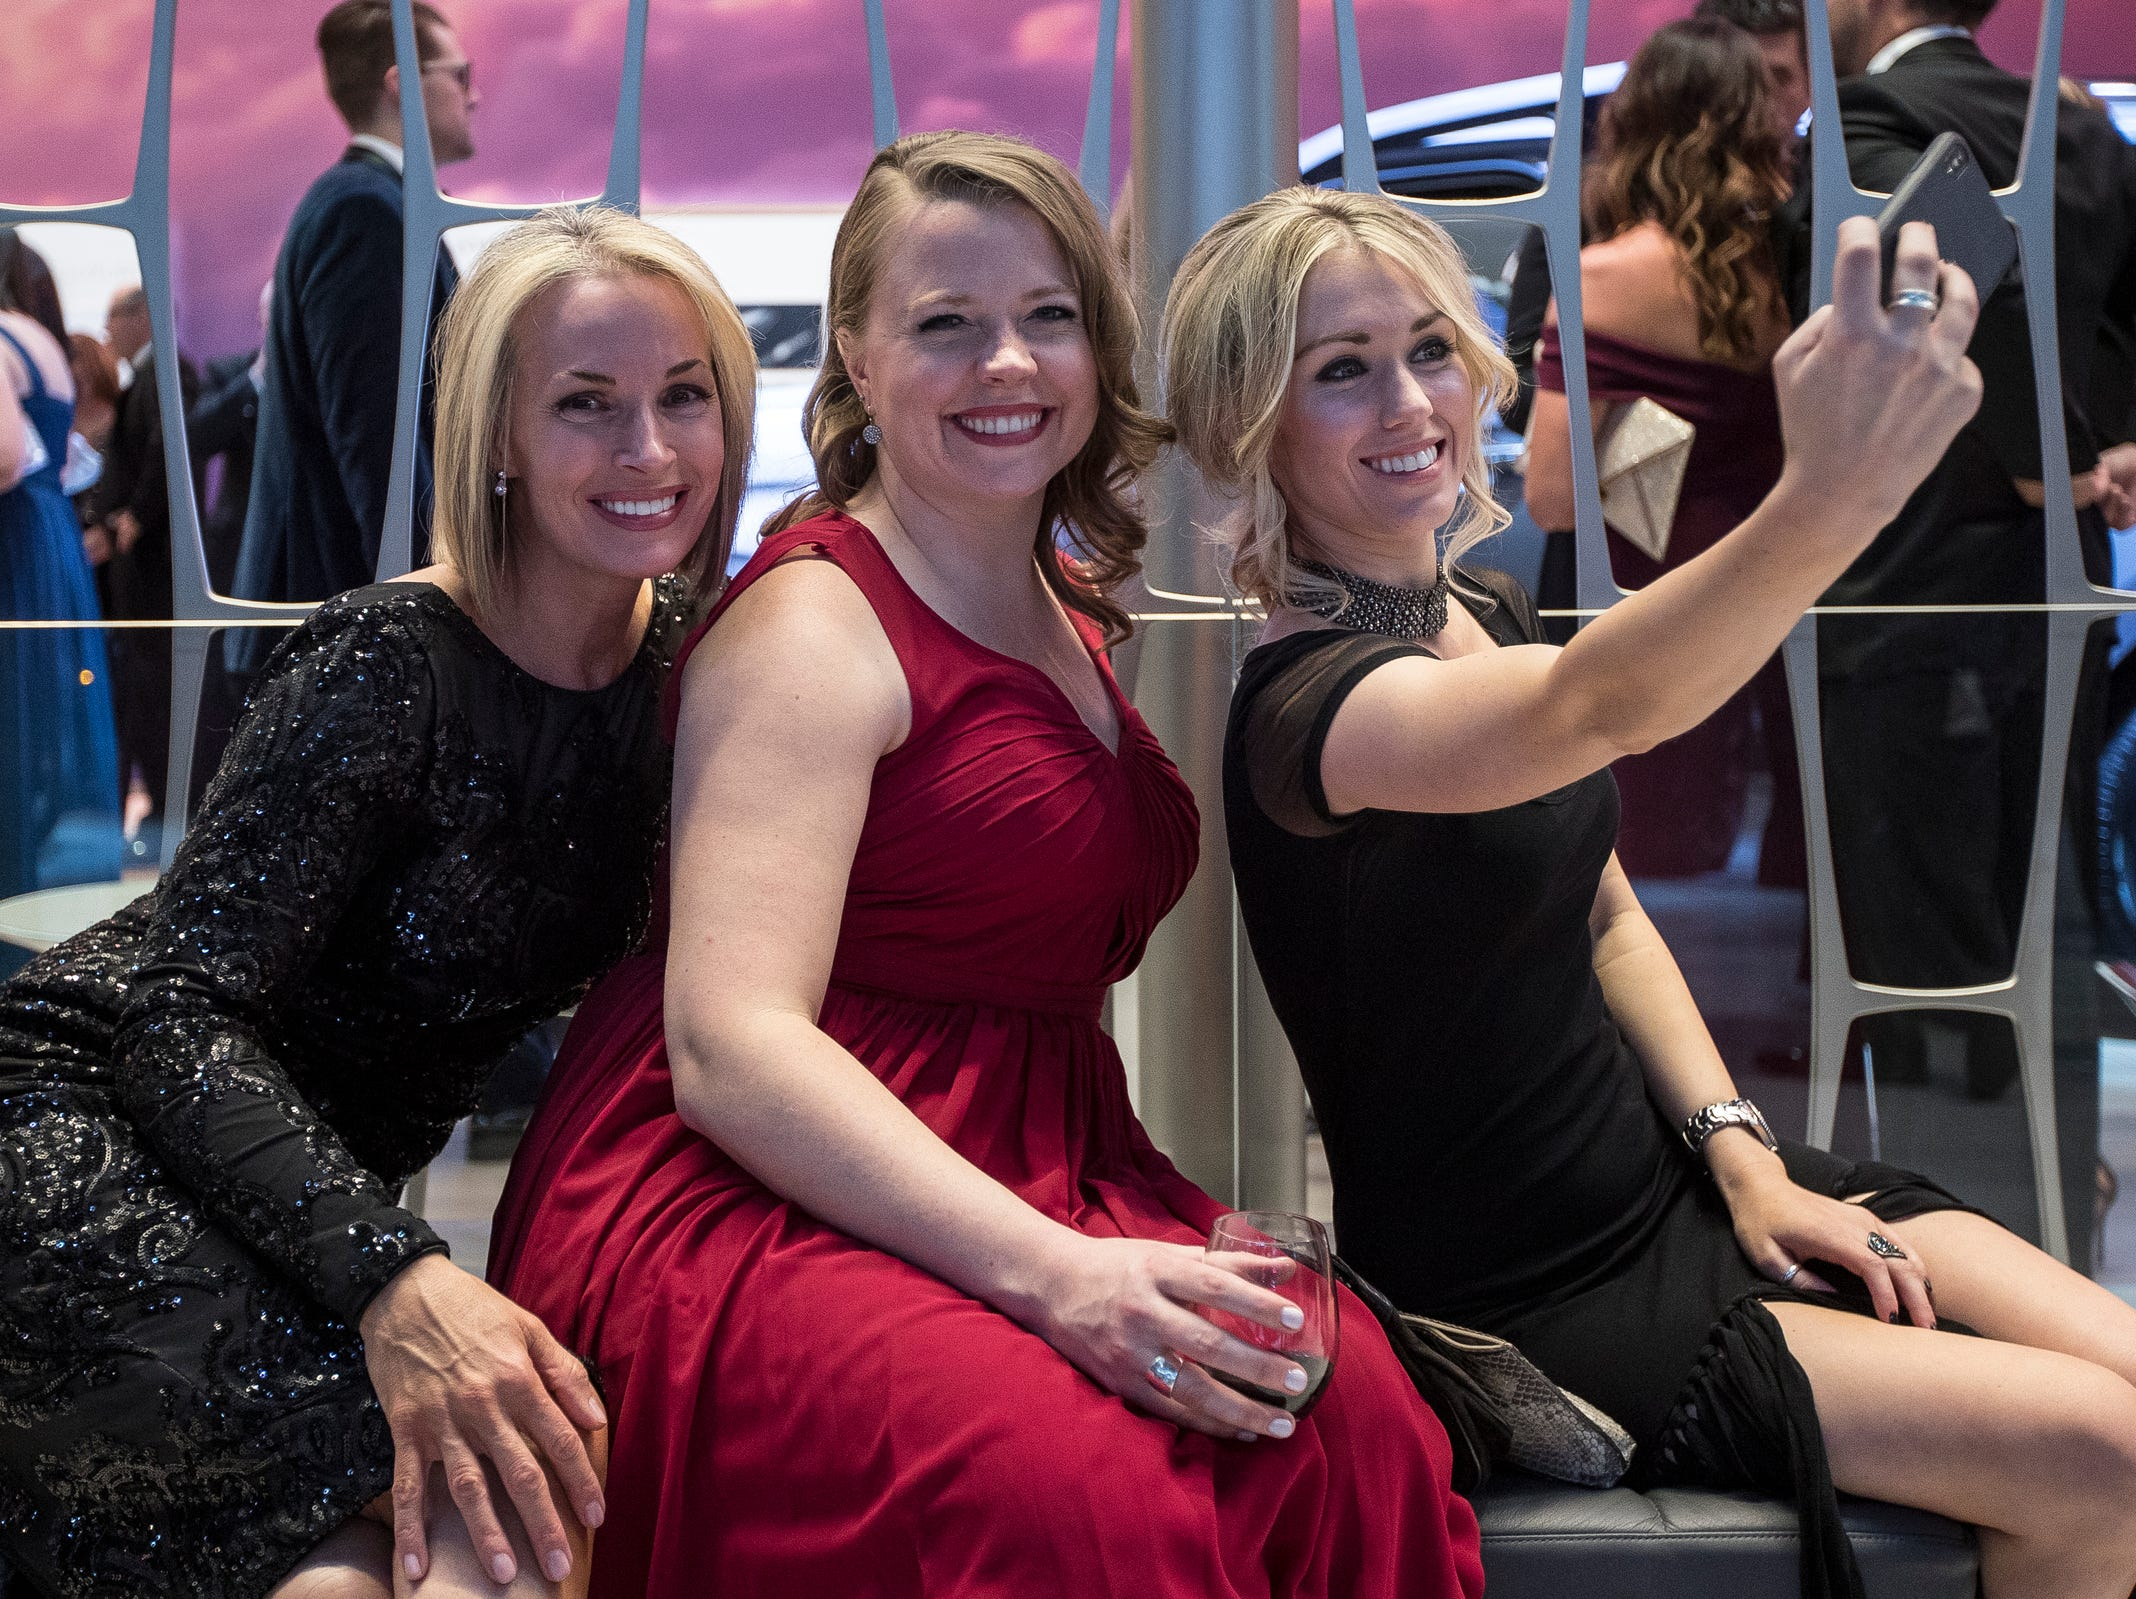 From left, Jena Campbell, Emily Falconer and Heather Oldani pose for a photo in the Lincoln booth during the 2019 North American International Auto Show Charity Preview at Cobo Center in Detroit on Friday, January 18, 2019.